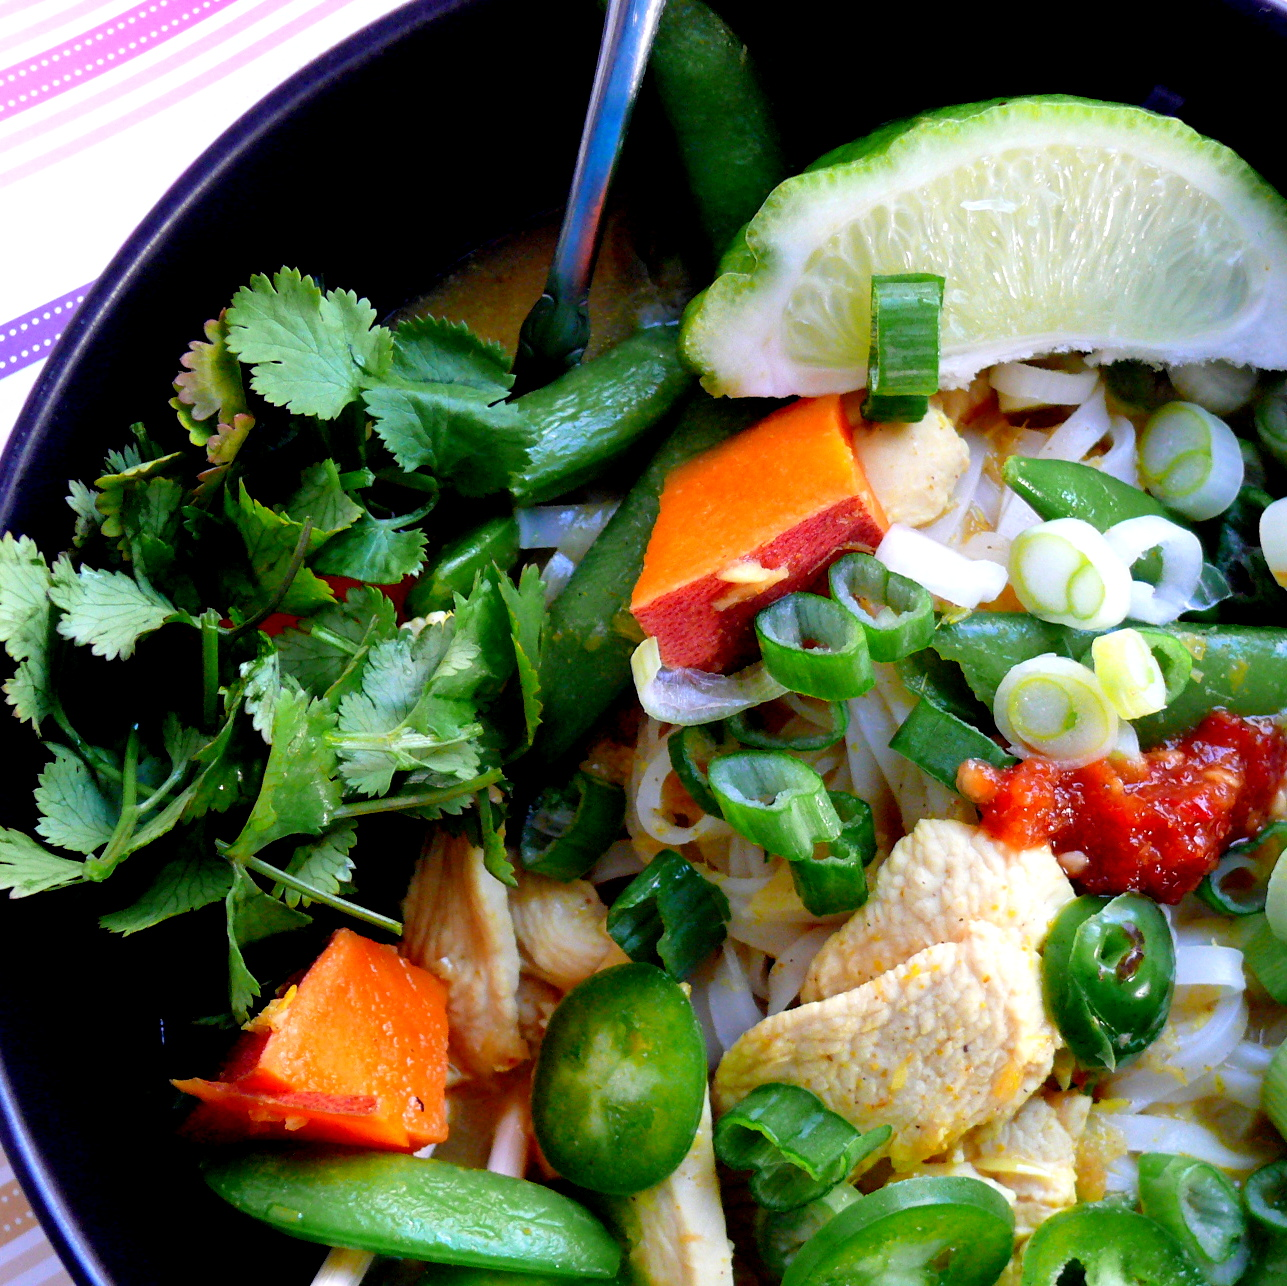 ... Little Pleasures: Spicy Thai Curry Soup with Chicken and Sweet Potato